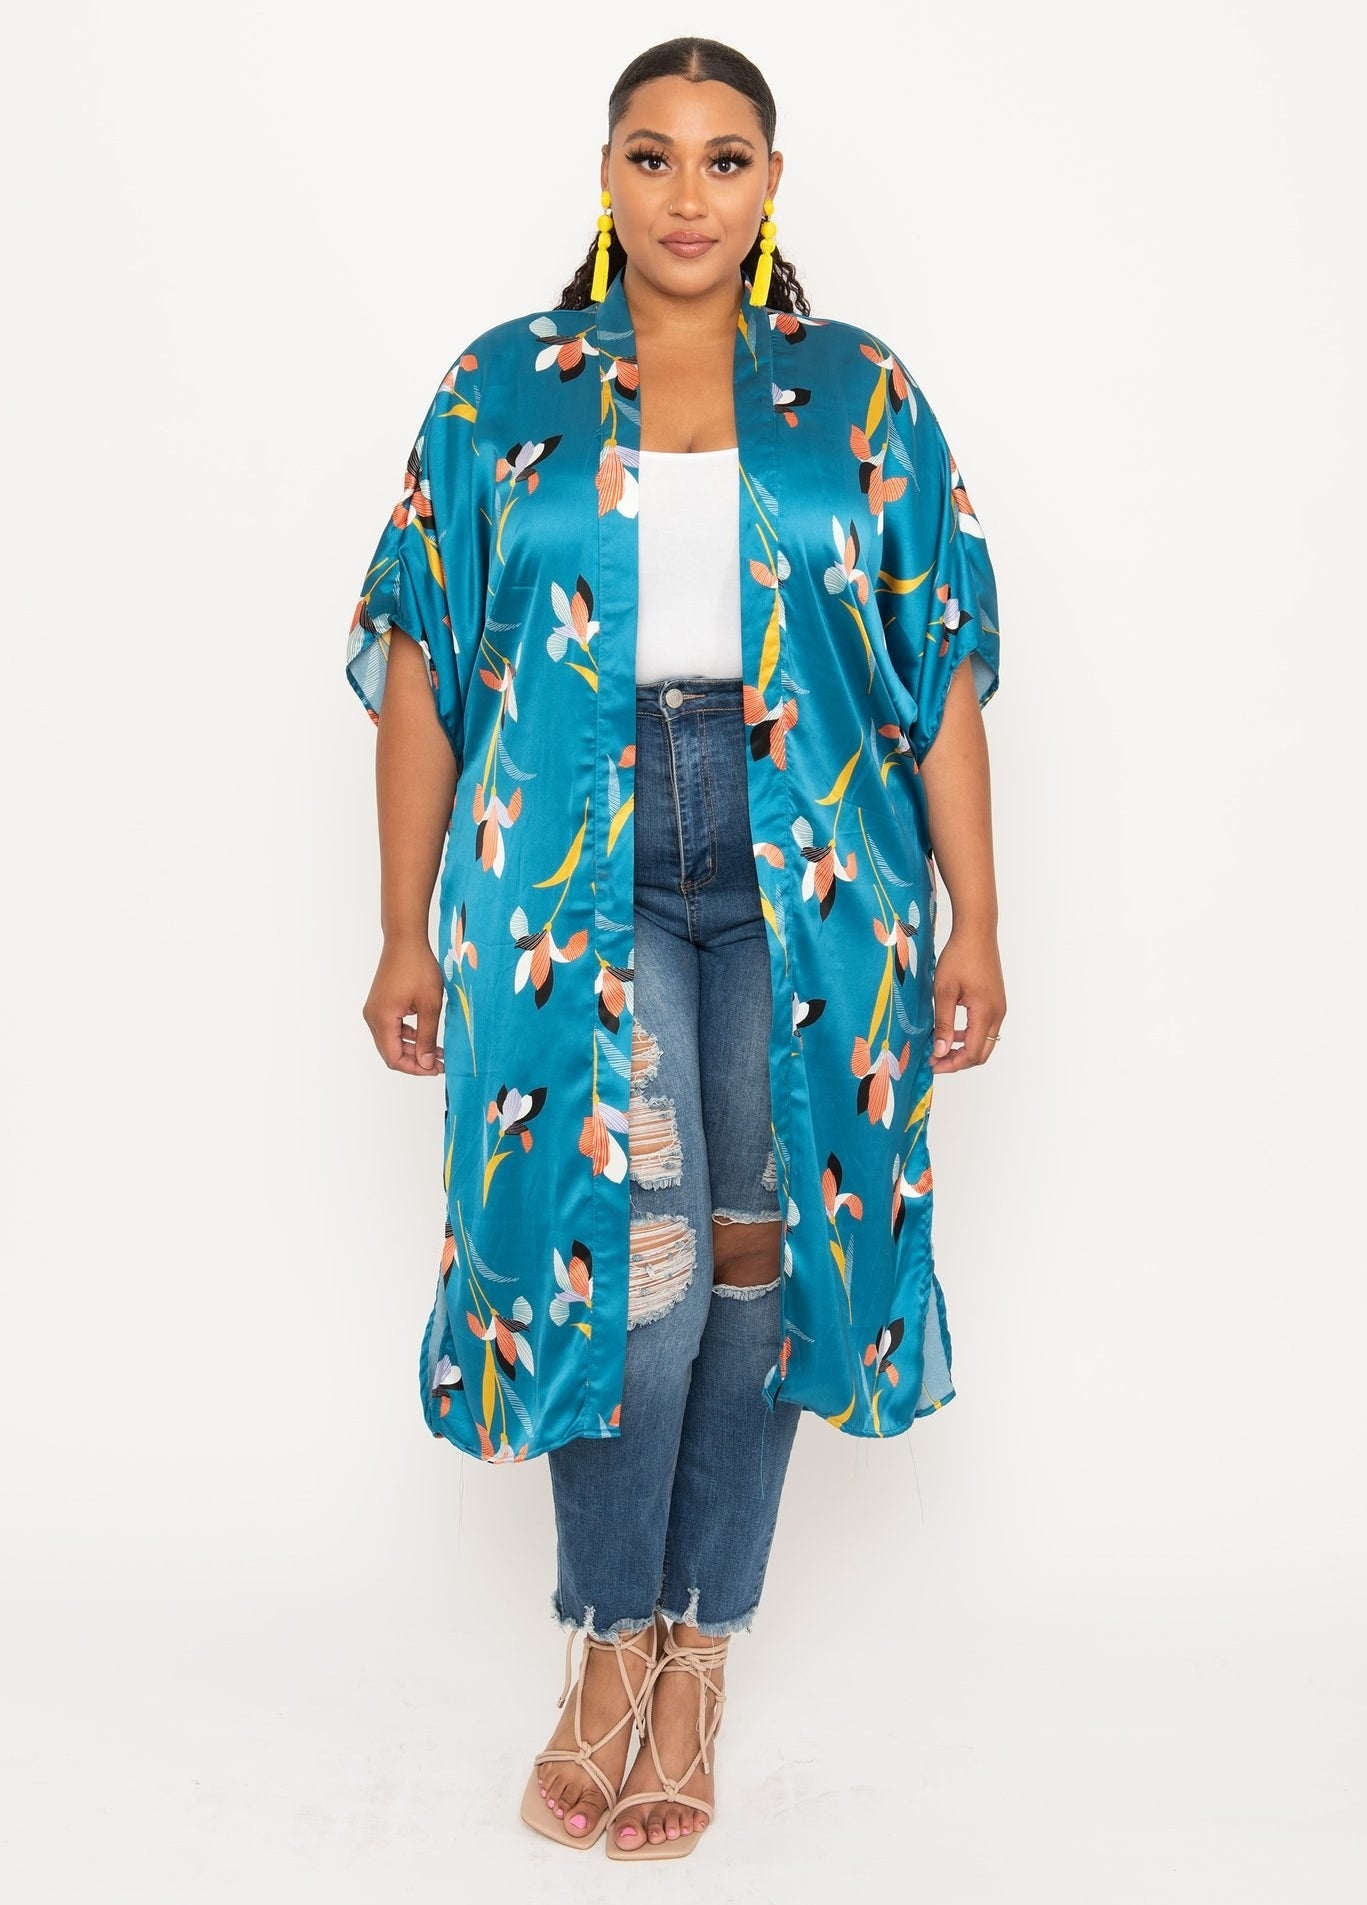 a model wearing jeans, a white t-shirt and a printed silky duster that goes below the knees